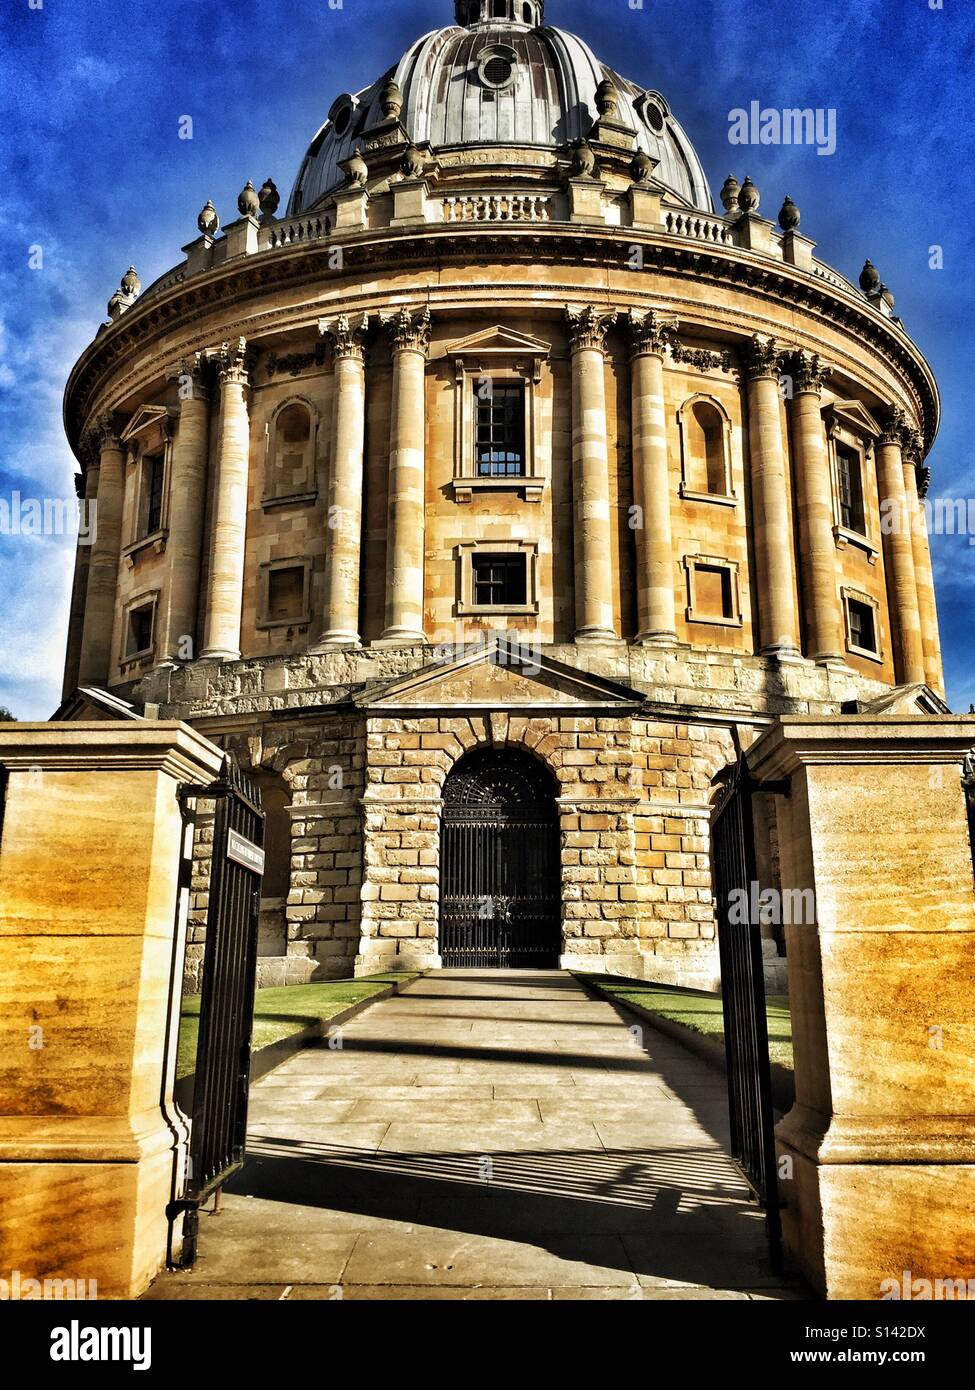 Oxford Radcliffe Camera - Stock Image